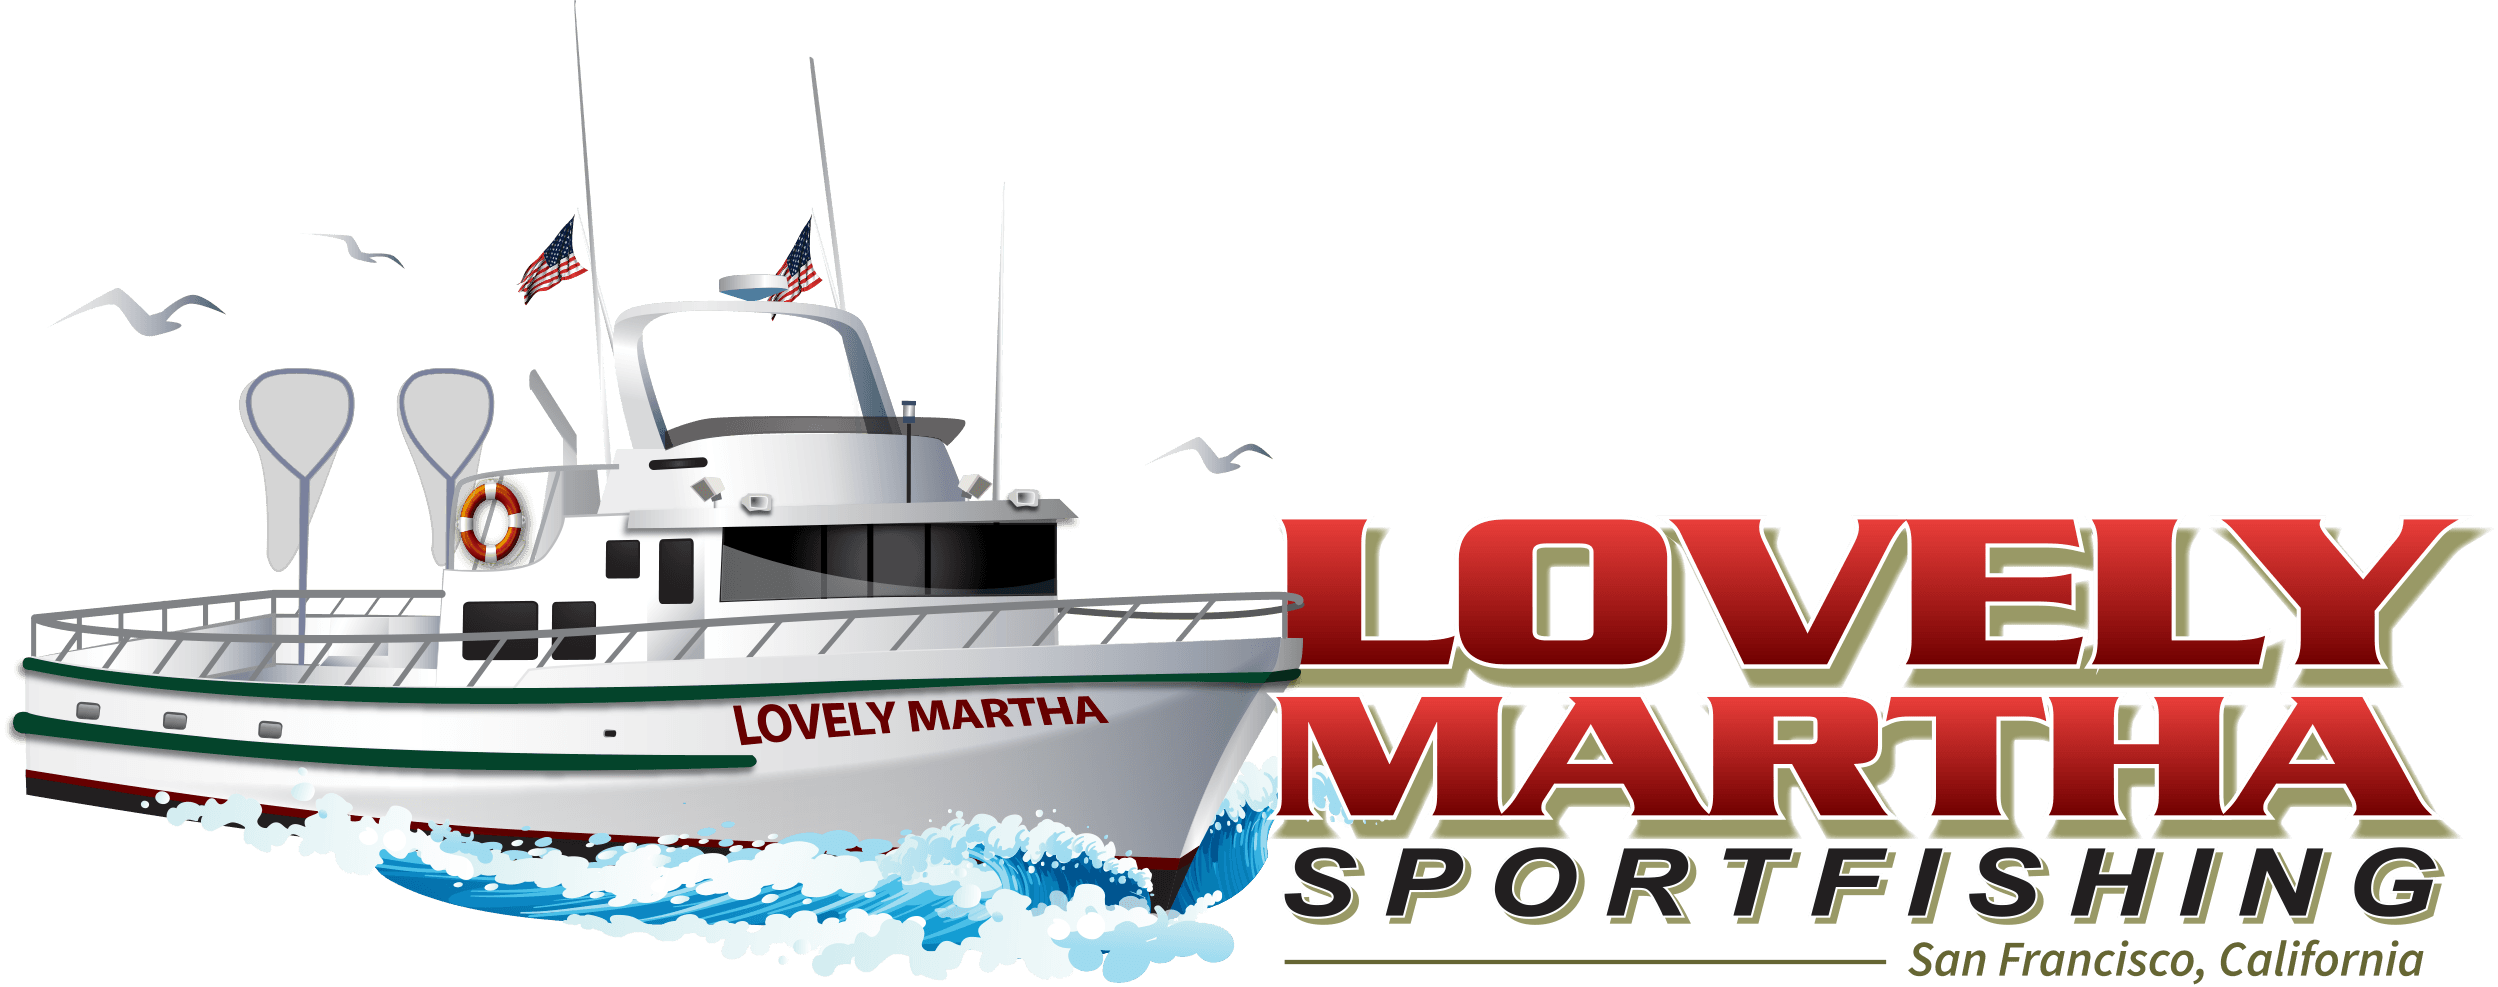 Lovely Martha Sportfishing